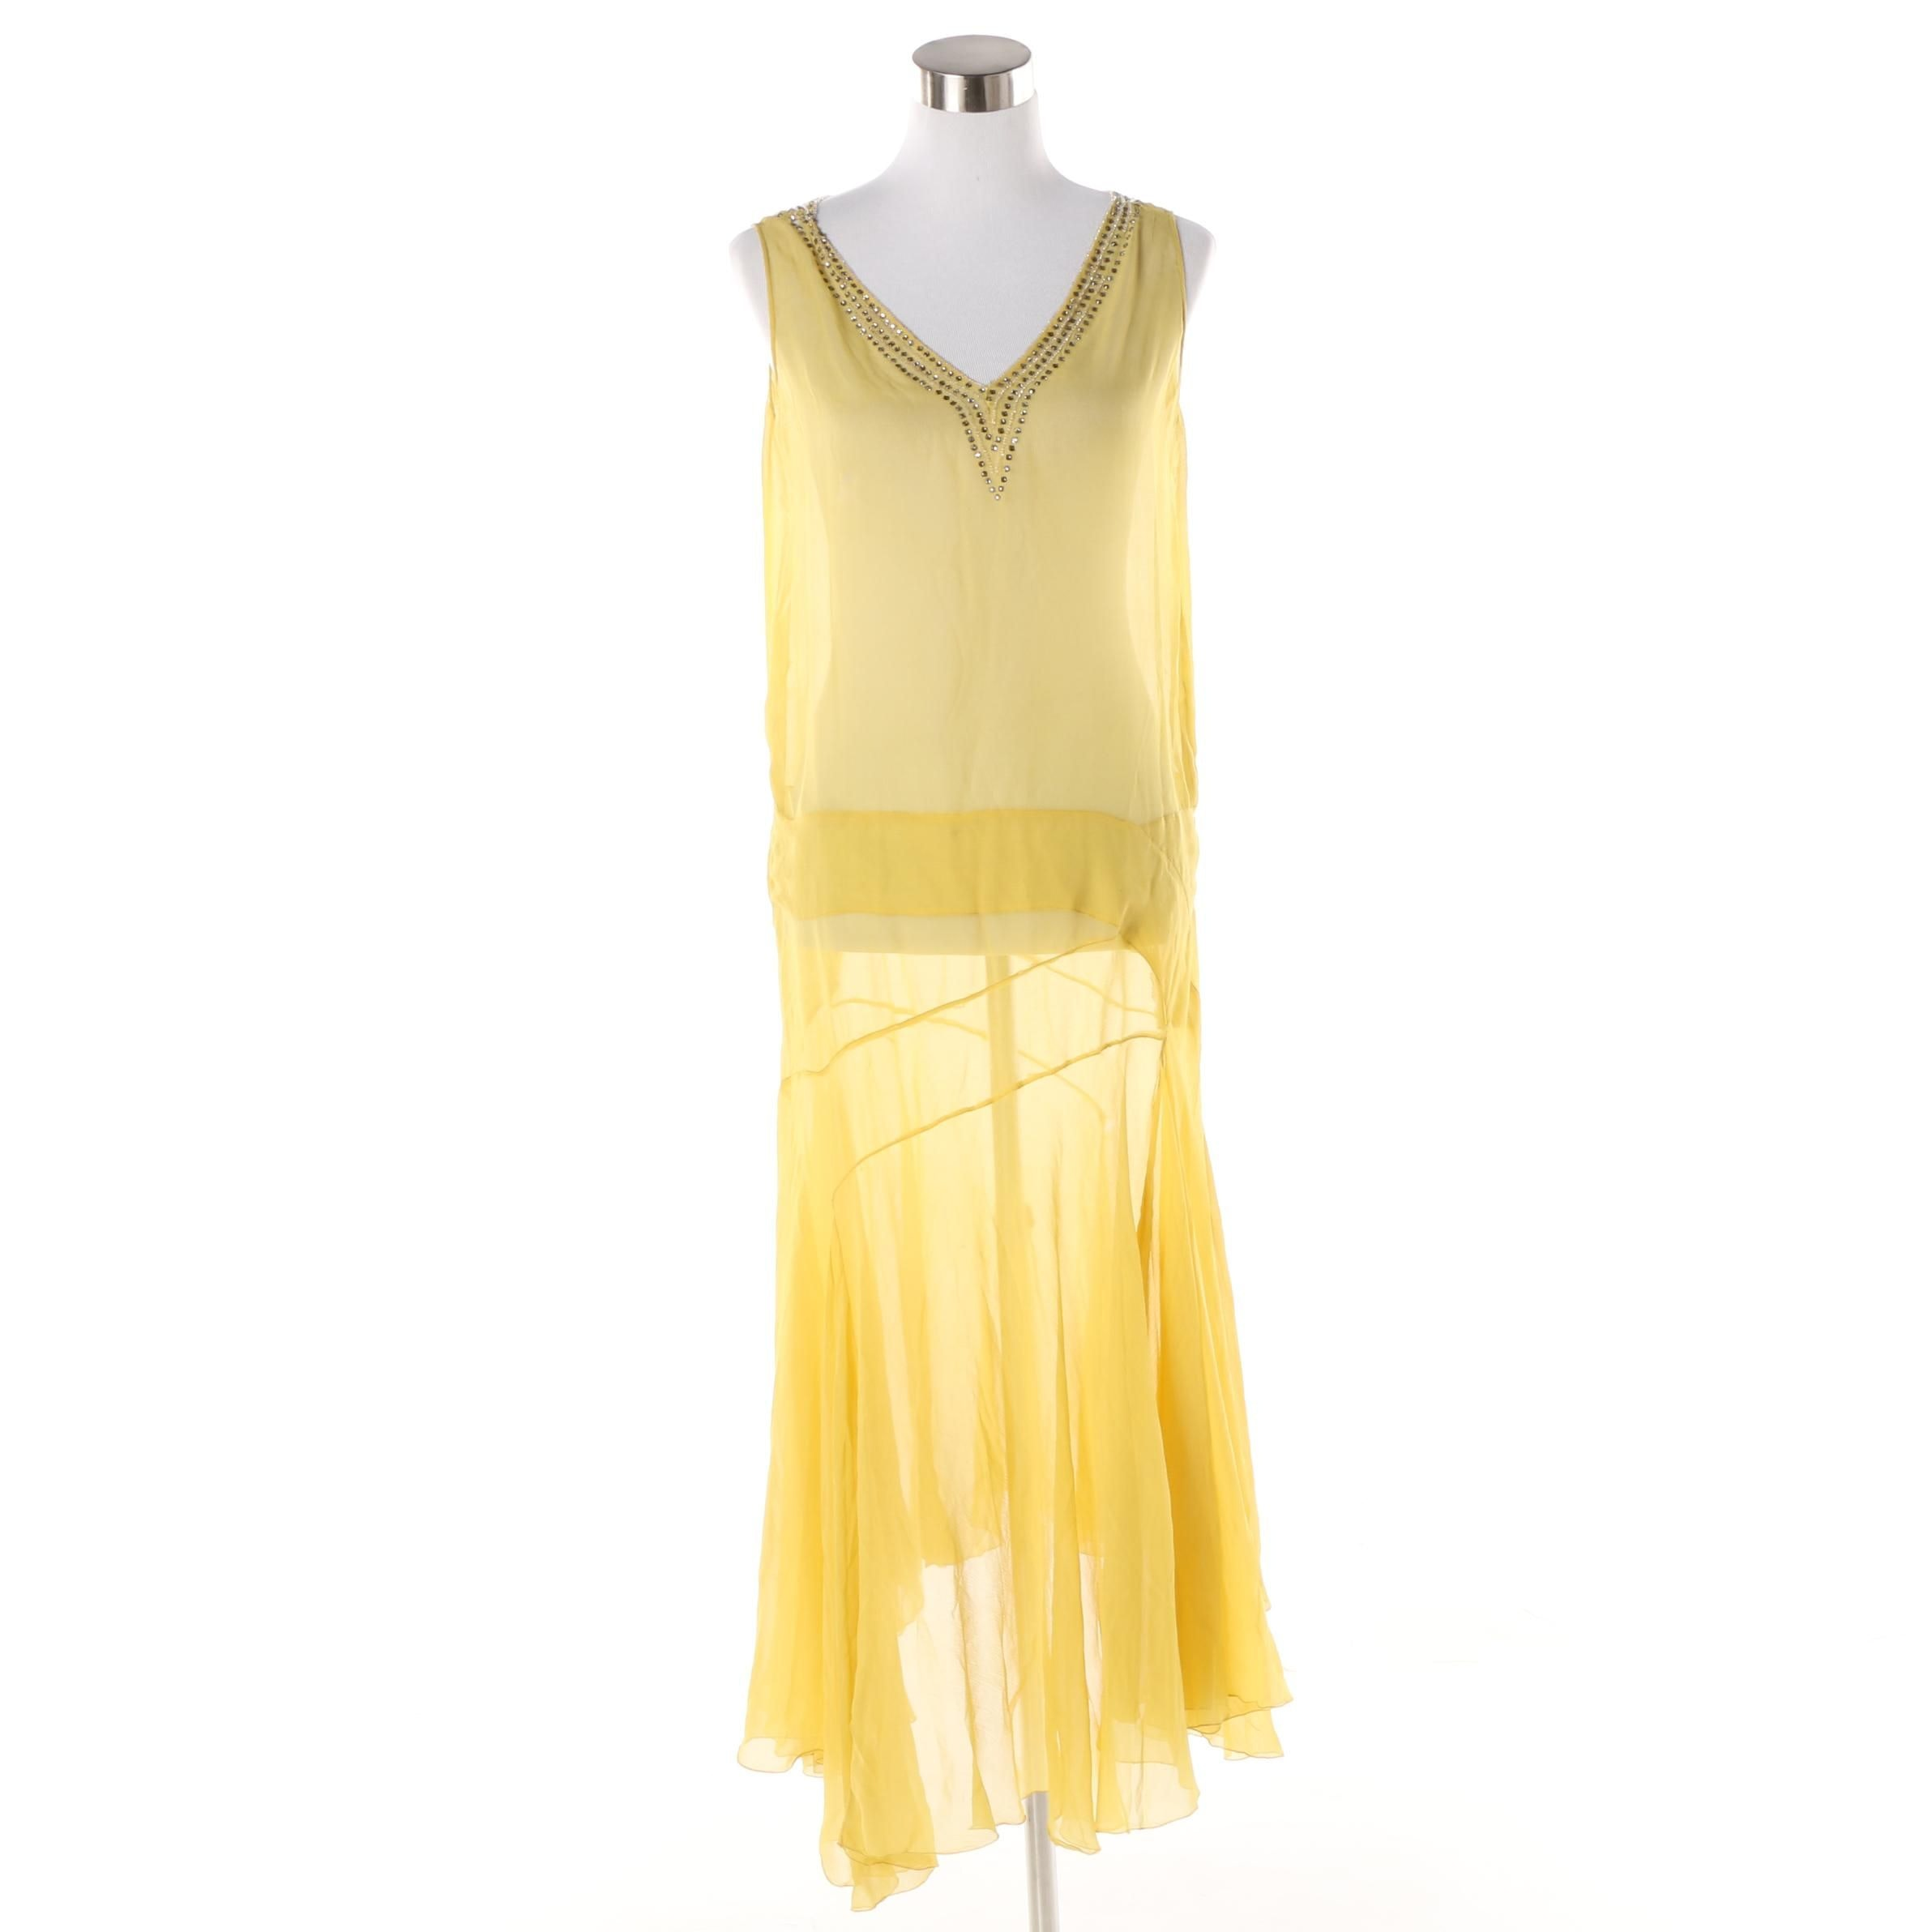 1920s Vintage Art Deco Sheer Silk Dress Accented with Beads